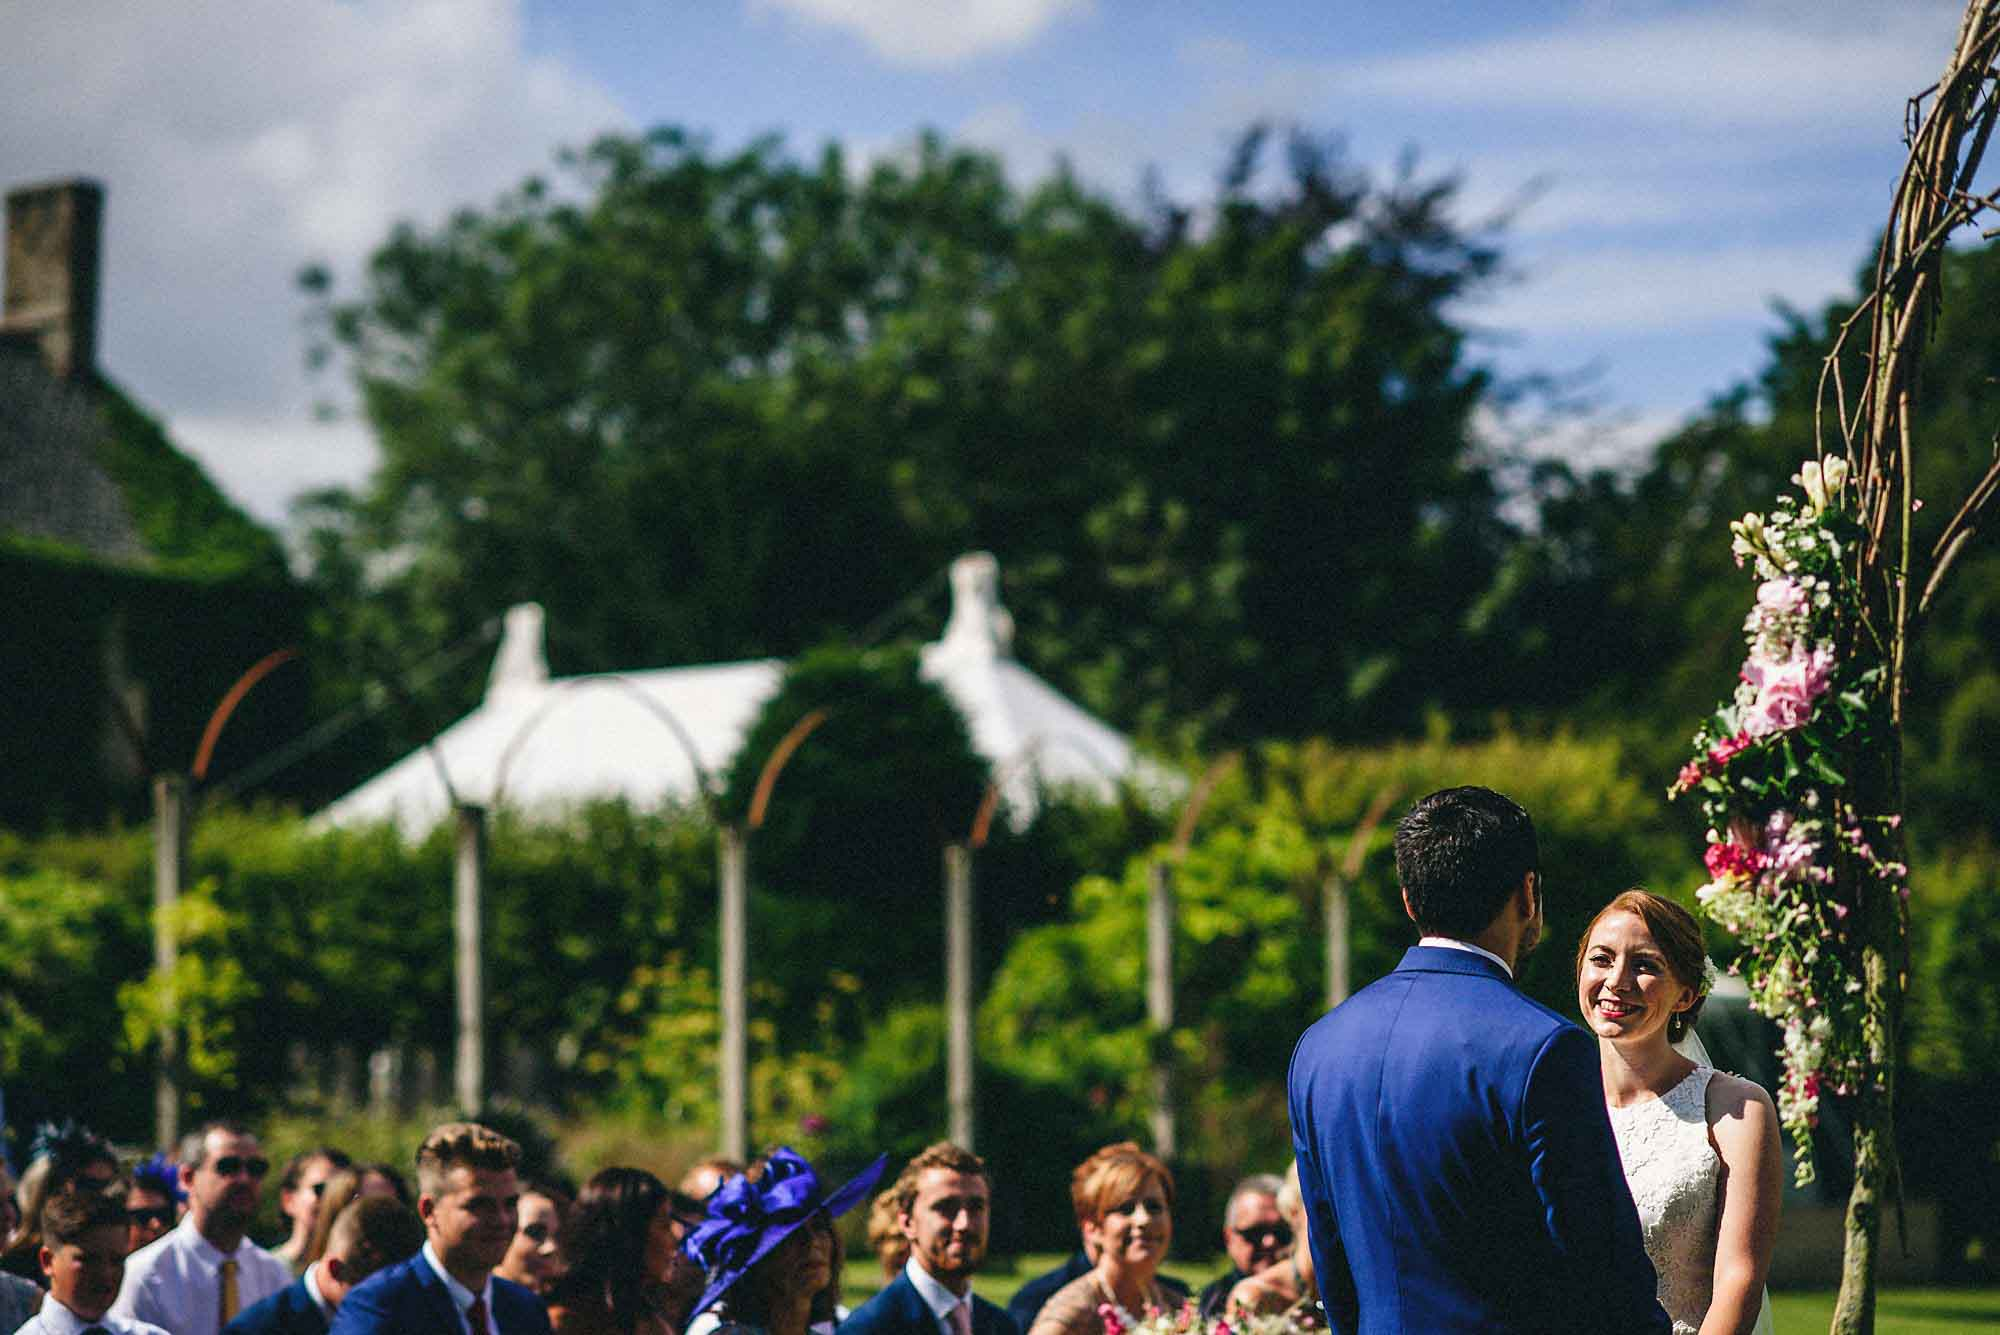 Narborough Hall Gardens wedding photography 23 Completed